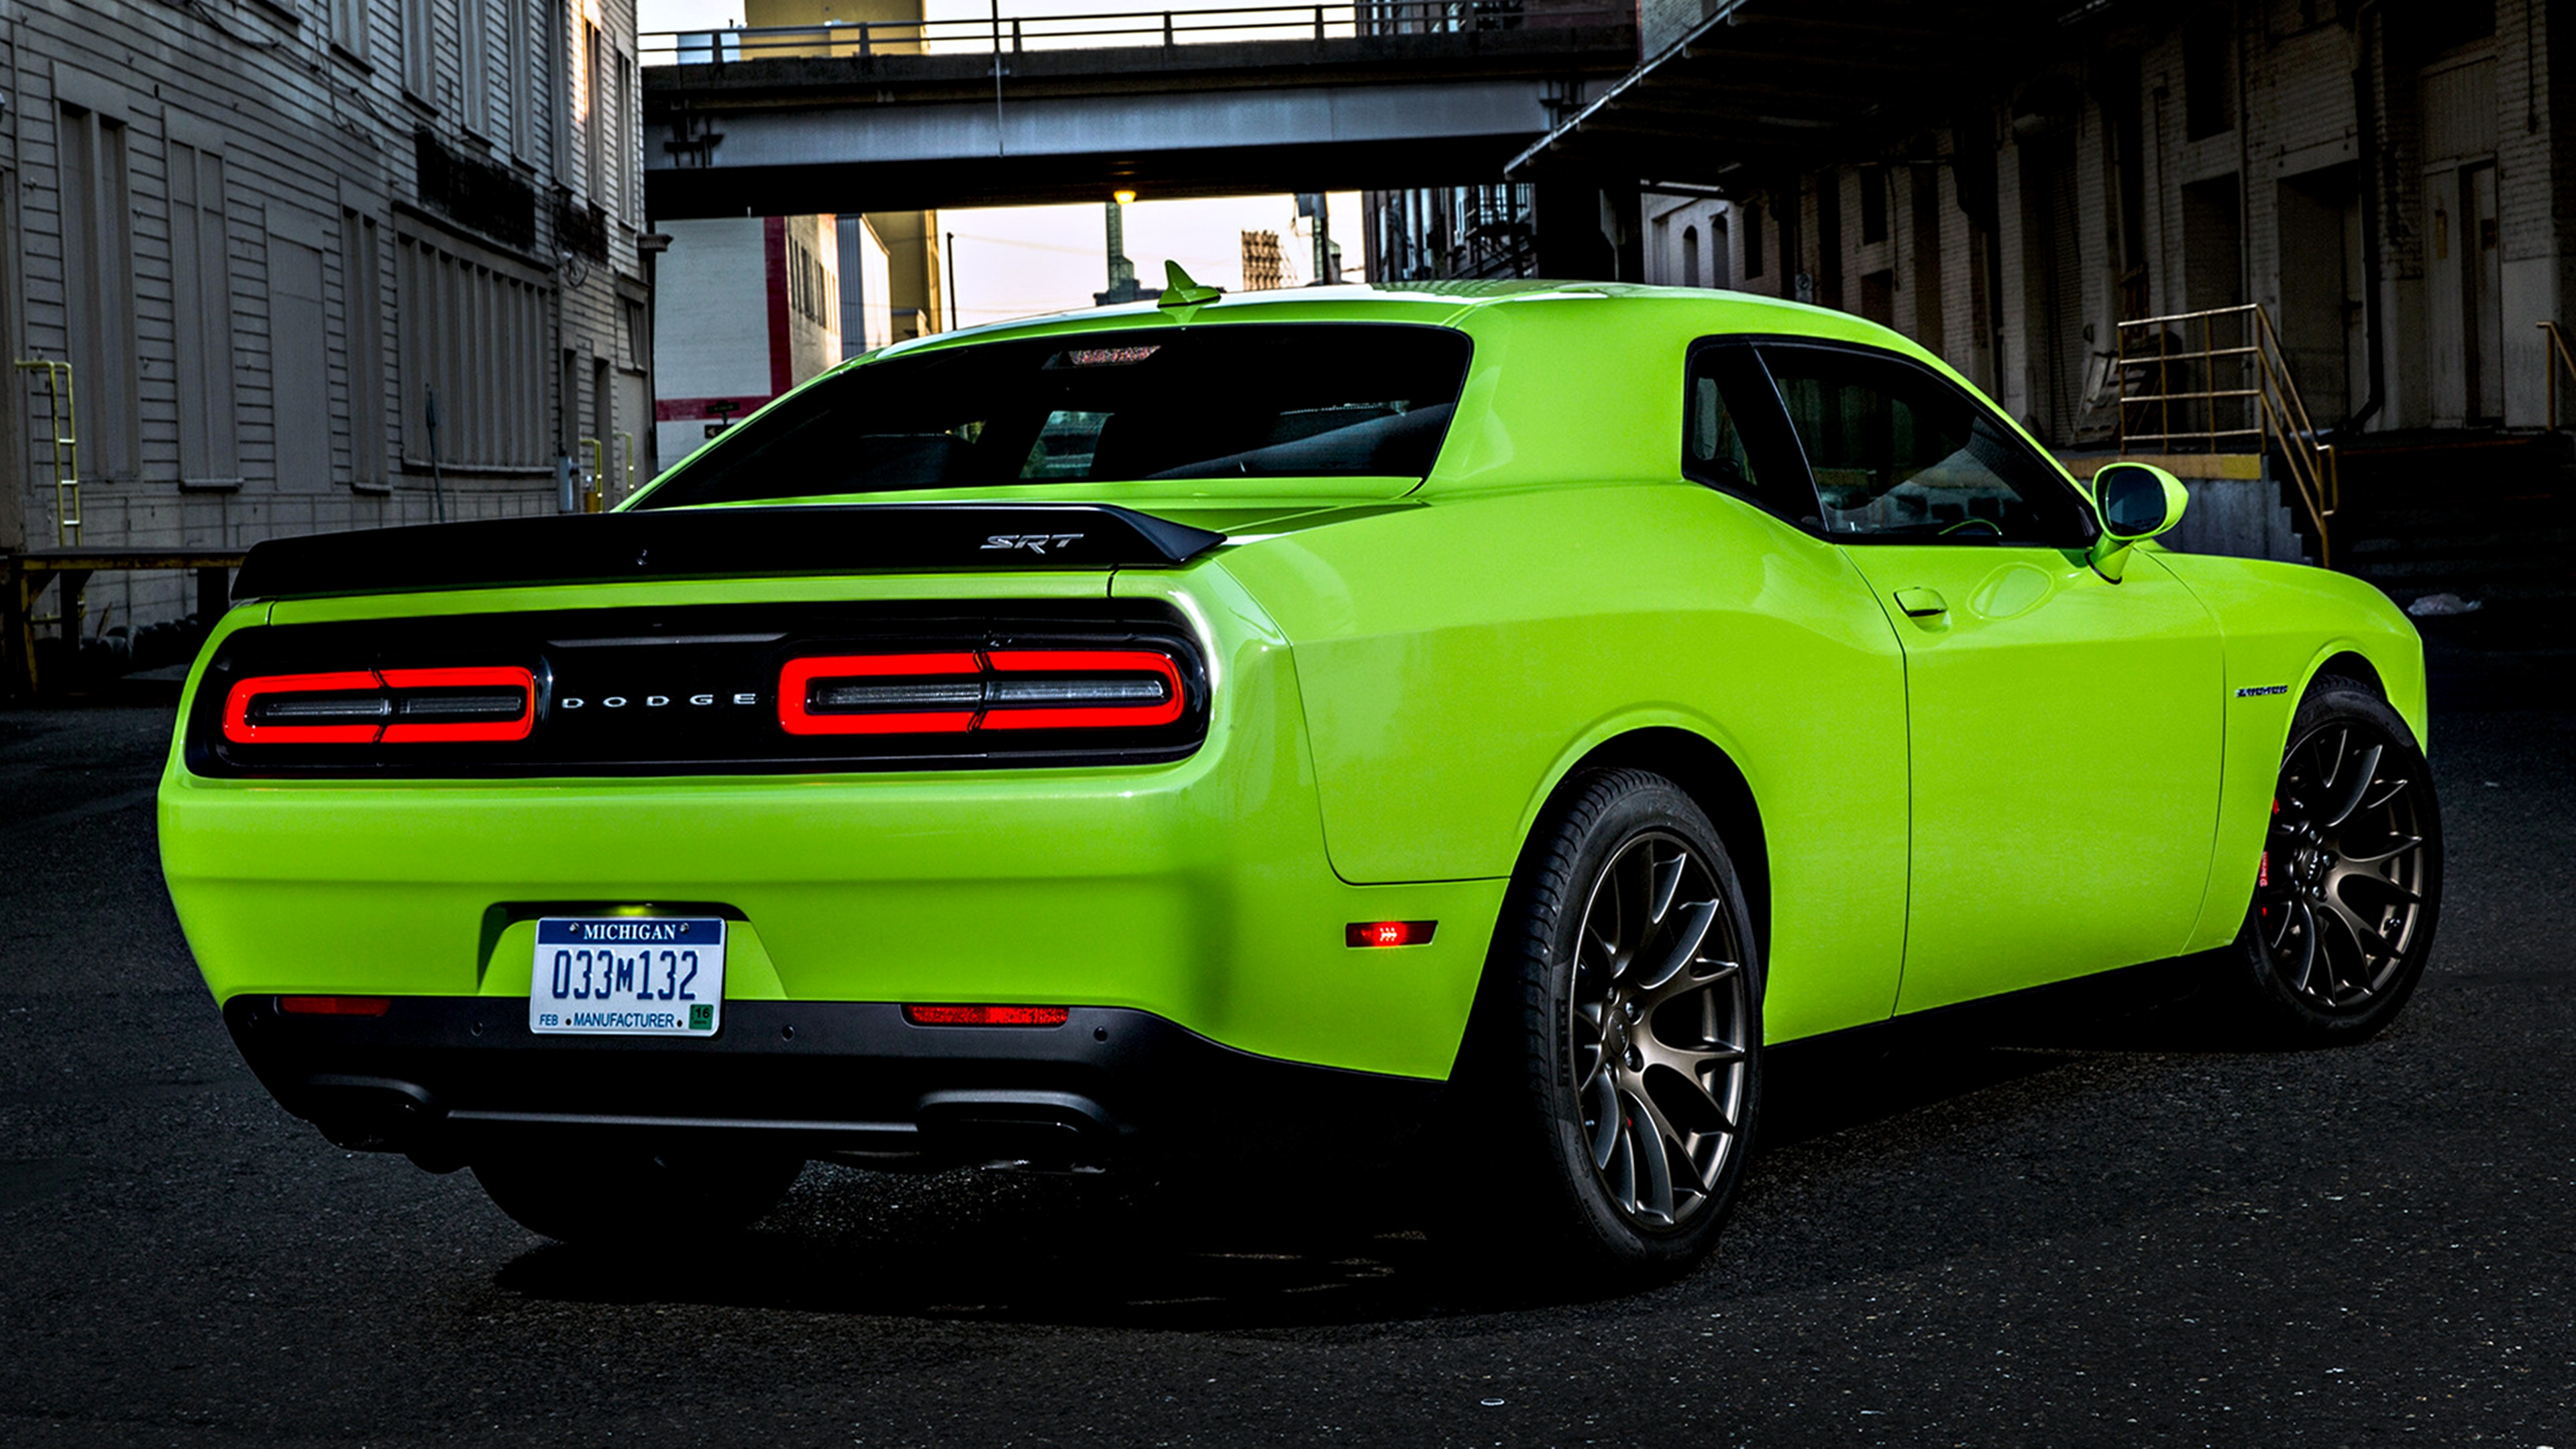 Dodge Challenger SRT Hellcat 4k Ultra HD Wallpaper